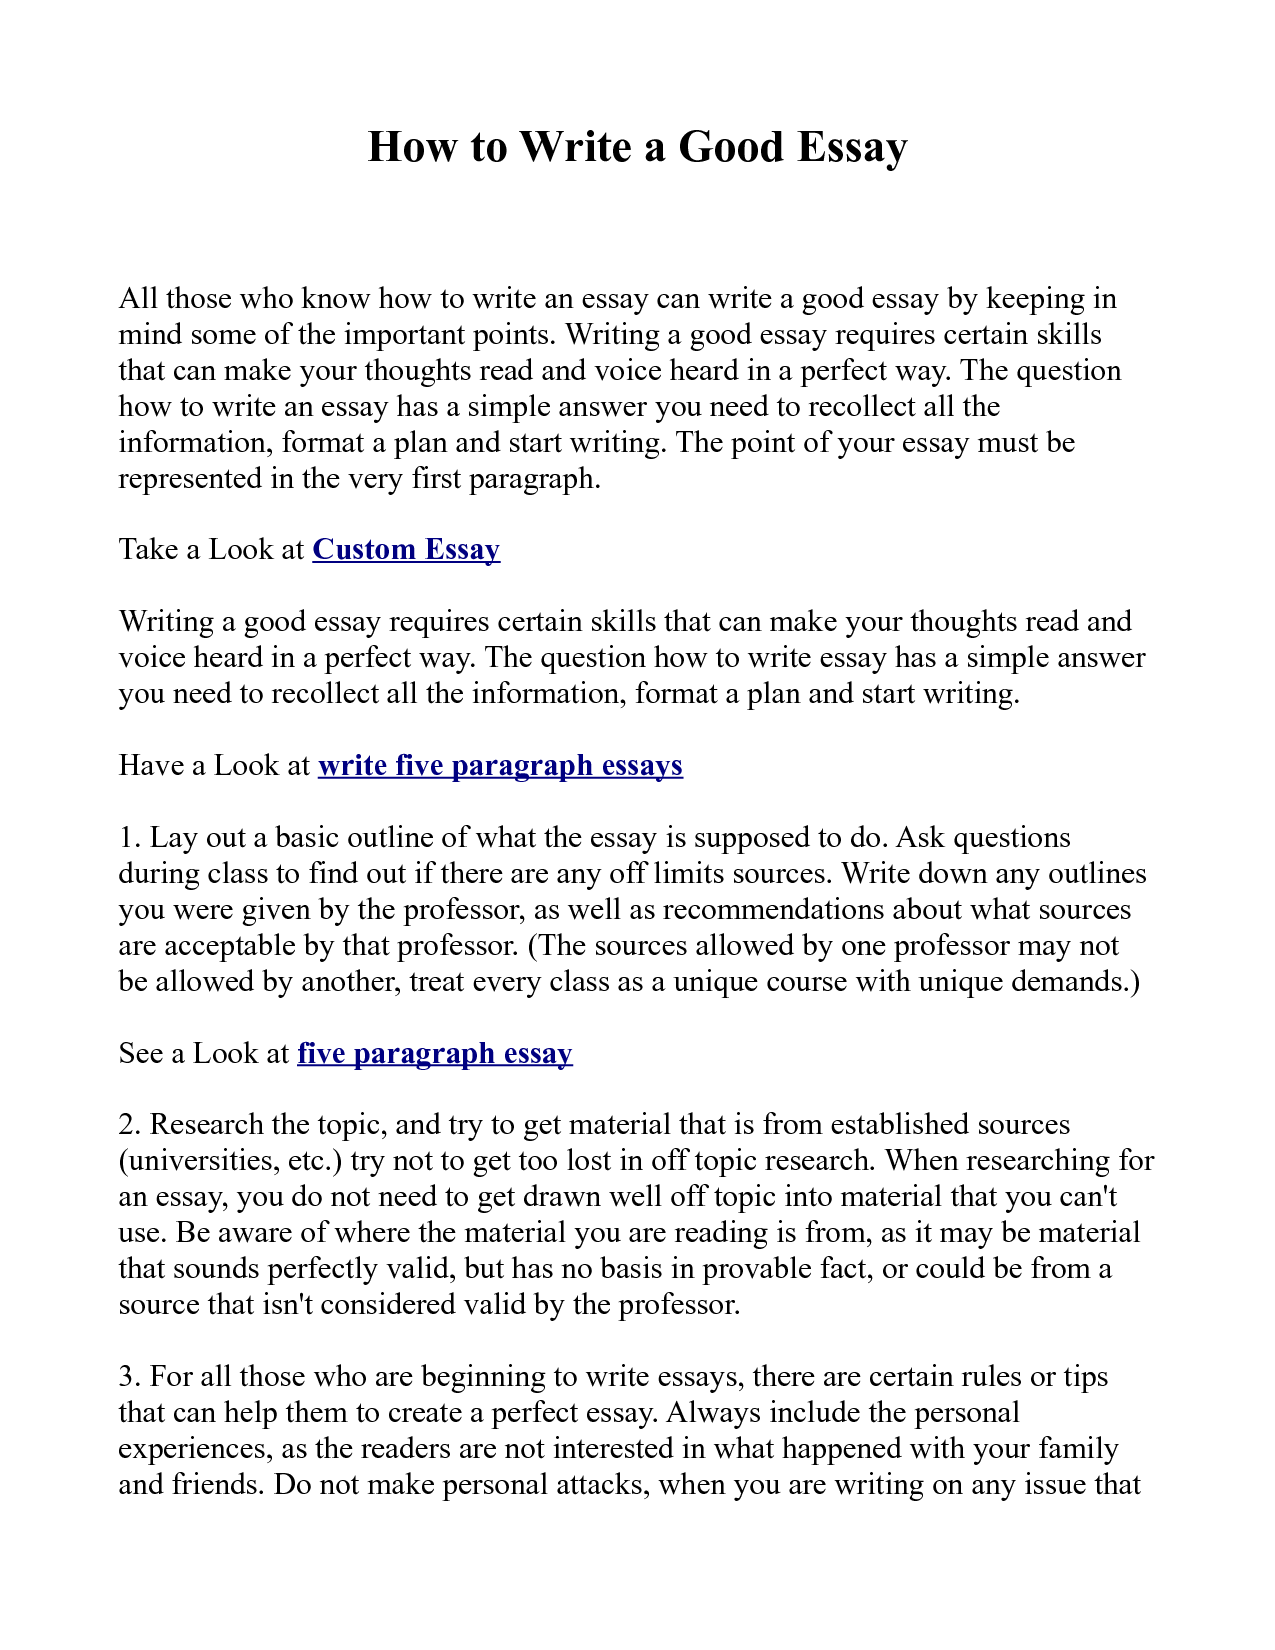 005 Essay Example Ex1id5s6cl How To Amazing Write About Yourself An For A Job Interview Titles In Paper Full